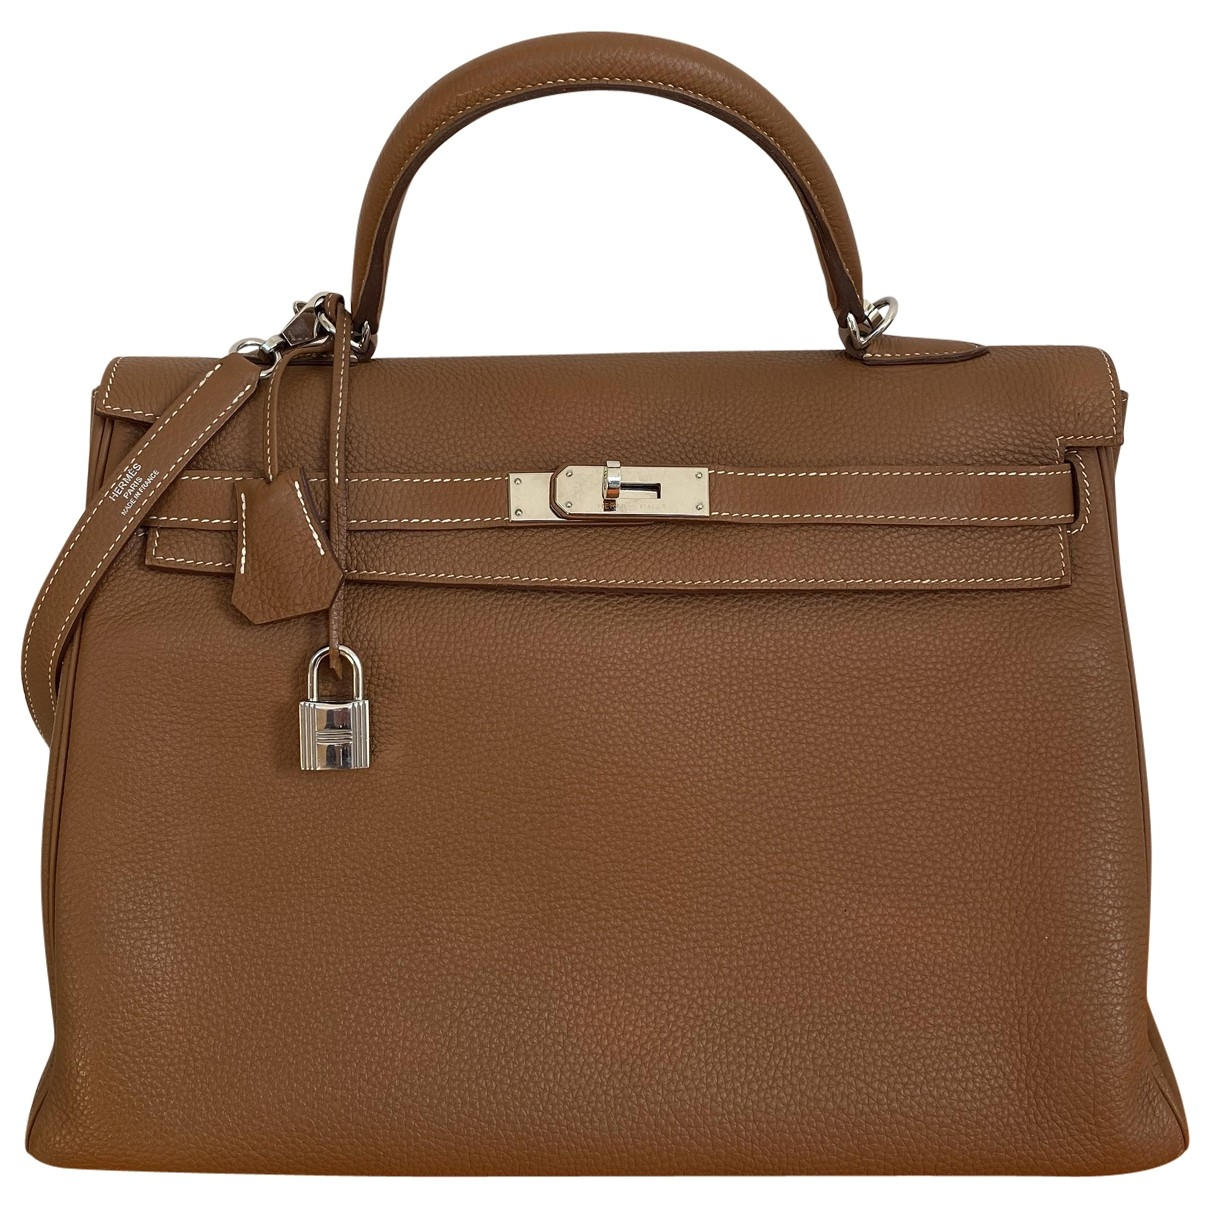 Hermès Kelly 35 Camel Leather handbag for Women \N